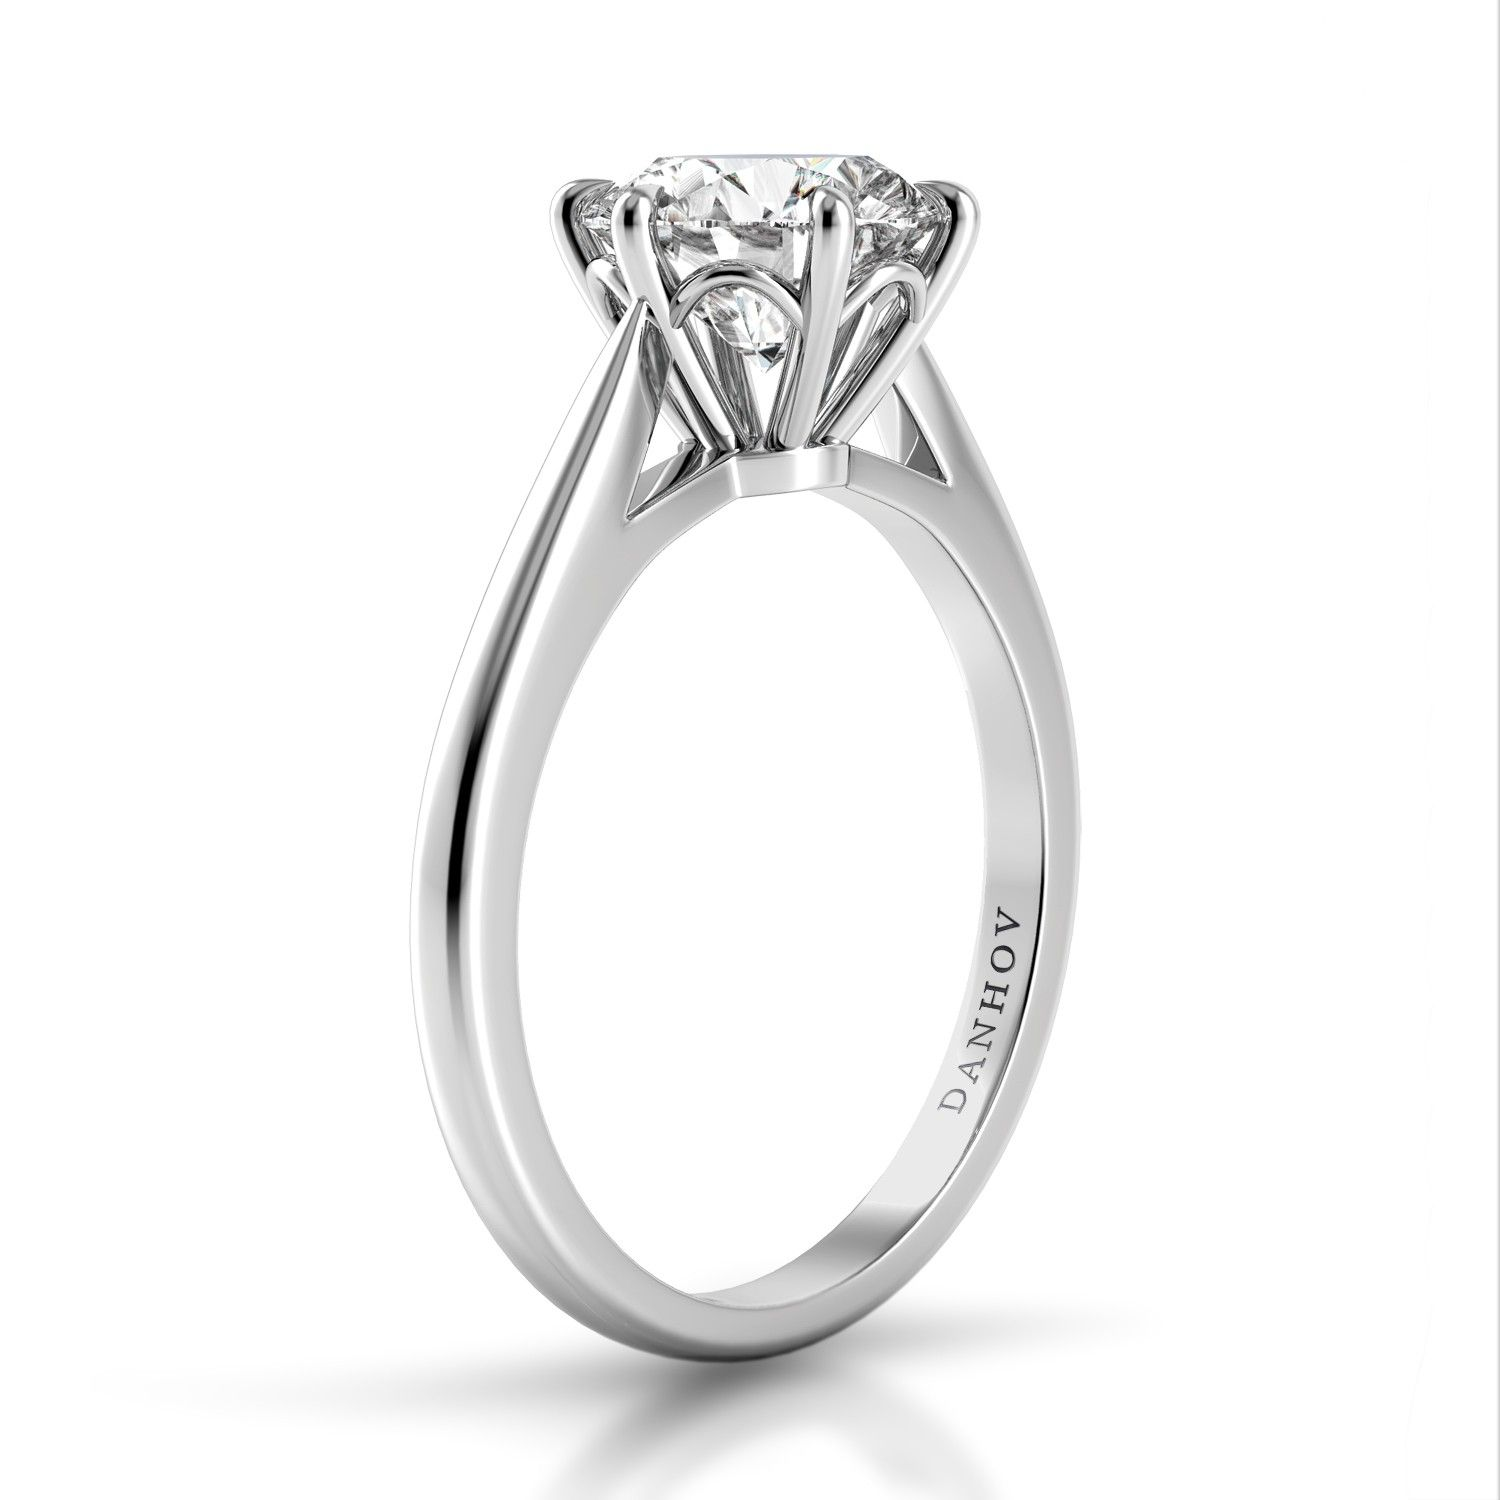 Danhov Clico Single Shank Engagement Ring. Style CL110 ... on asian ring designs, college ring designs, funny ring designs, indian ring designs, gorgeous ring designs, handmade ring designs, bizarre ring designs, german ring designs, school ring designs, amazing ring designs, black ring designs, tattoo ring designs, double ring designs, couple ring designs, classic ring designs, cute ring designs, family ring designs, old ring designs,